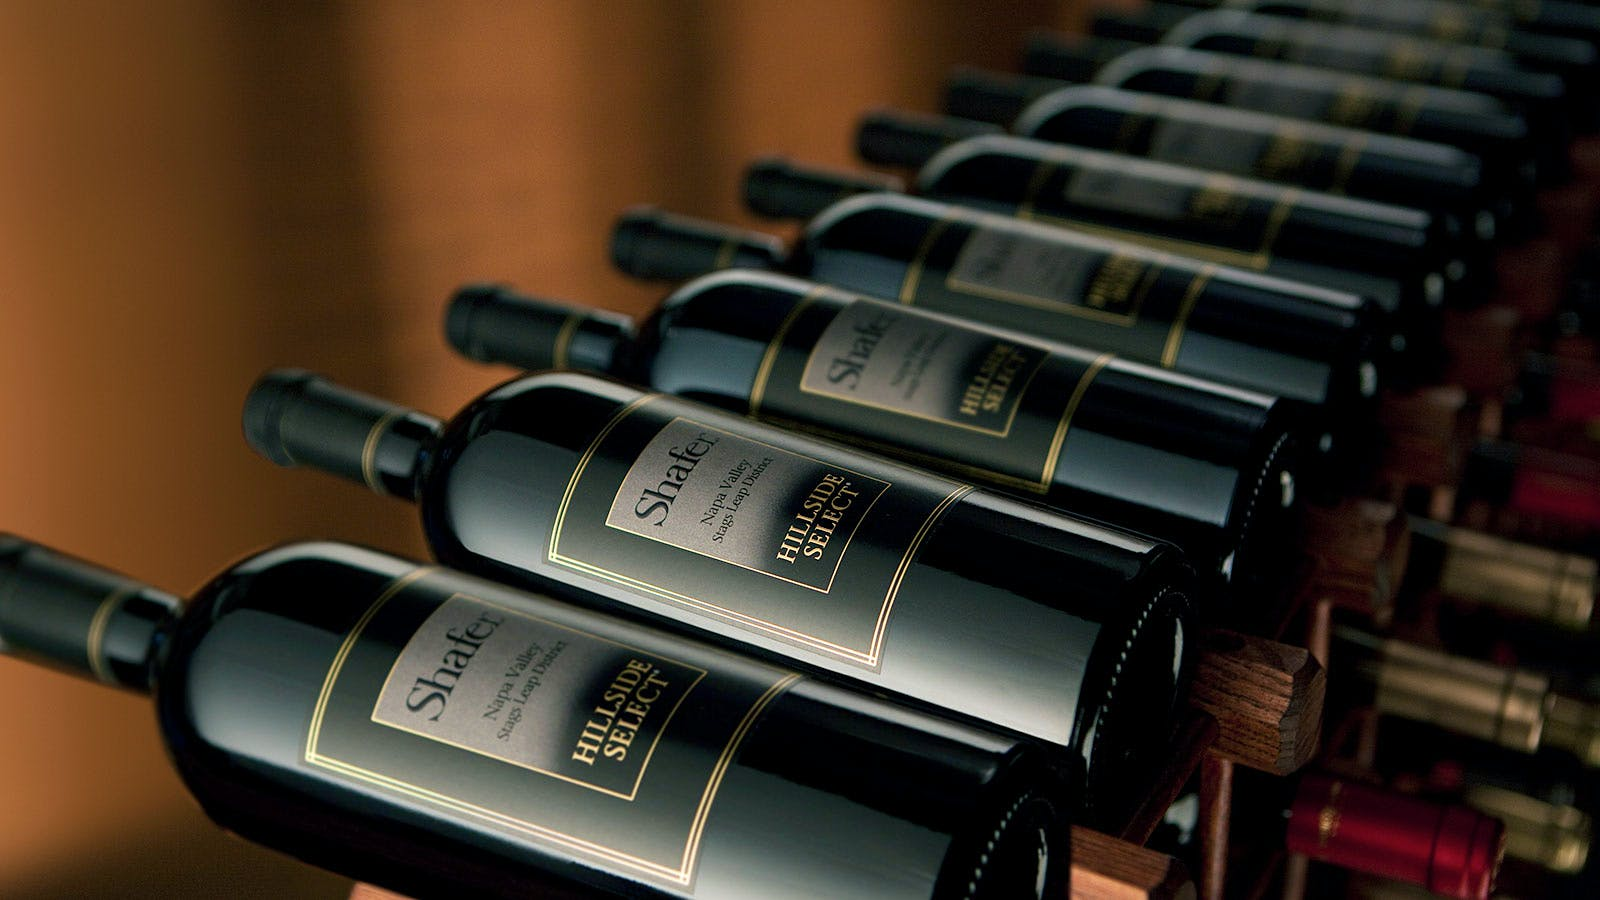 Screaming Eagle Magnums and Opus One Imperials: Napa Valley Vintners Online Auction Offers Rare Bottles